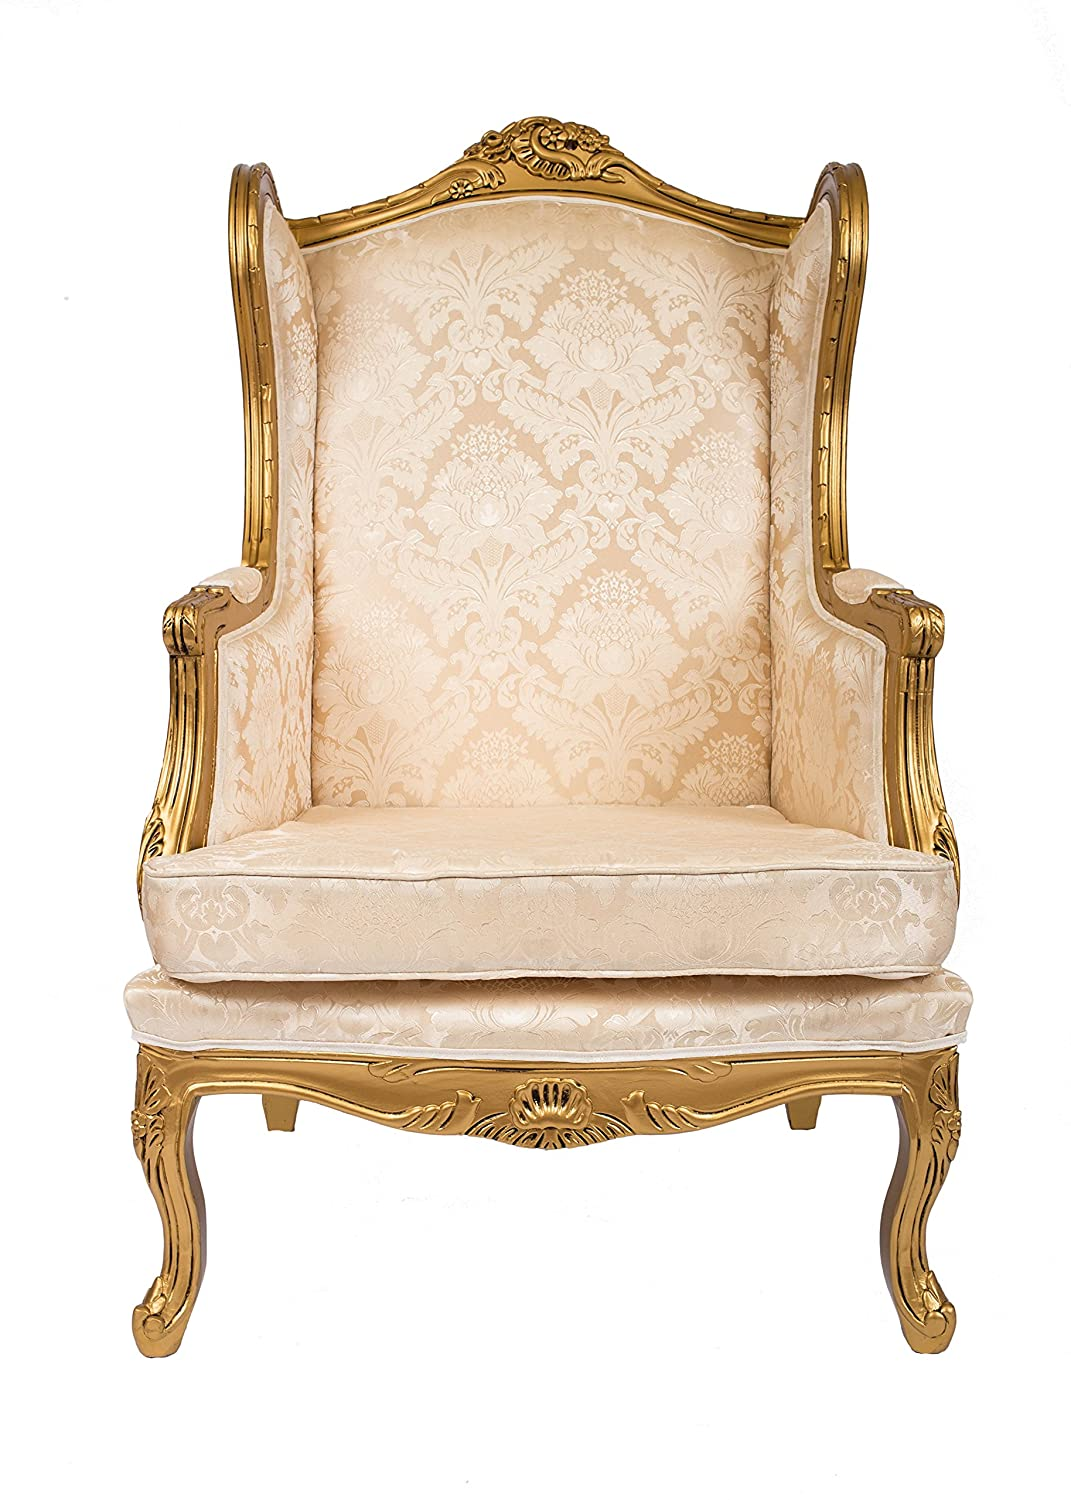 Queen Ann Wingback Sessel Antik Stil Shabby Chic Gold Damast